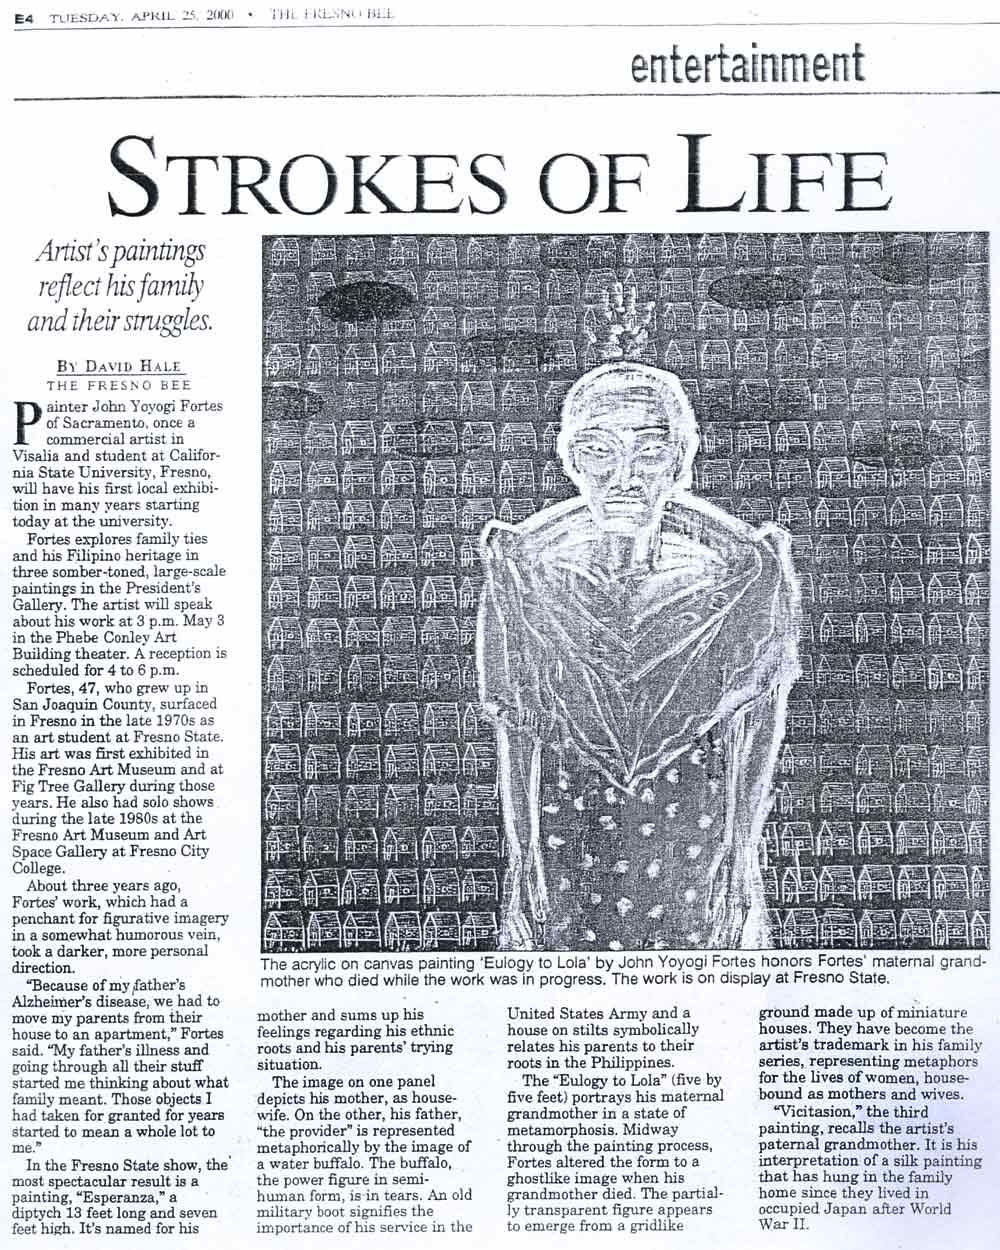 Strokes of Life, article